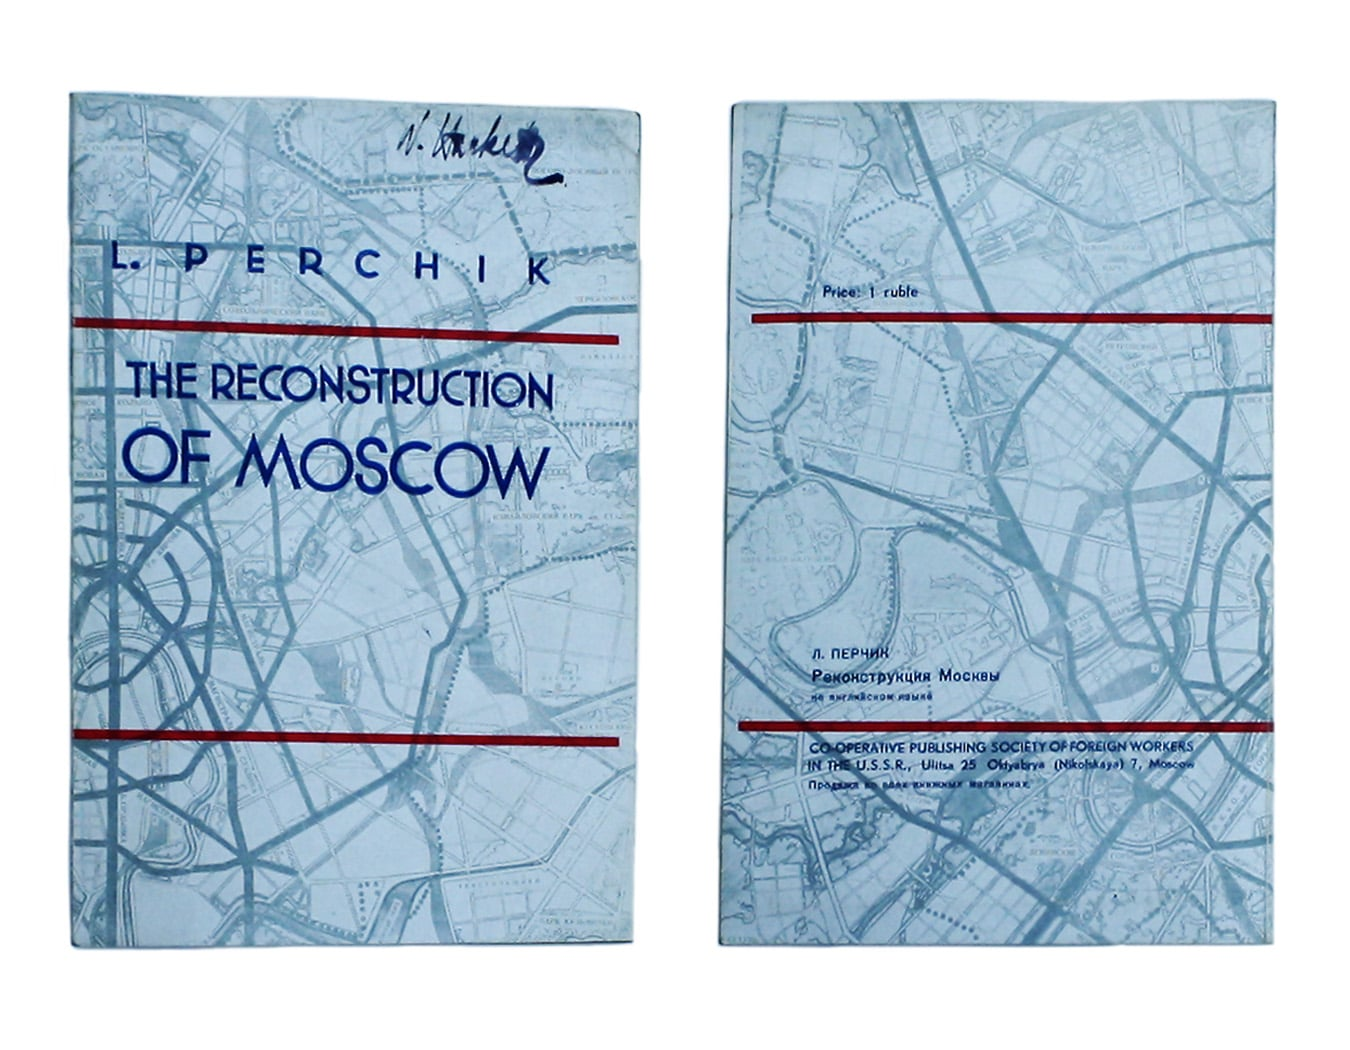 L. Perchik's 'The Reconstruction of Moscow', 1936; 'Leningrad', published by the Park and Palace Department of Leningrad Soviet, 1934.